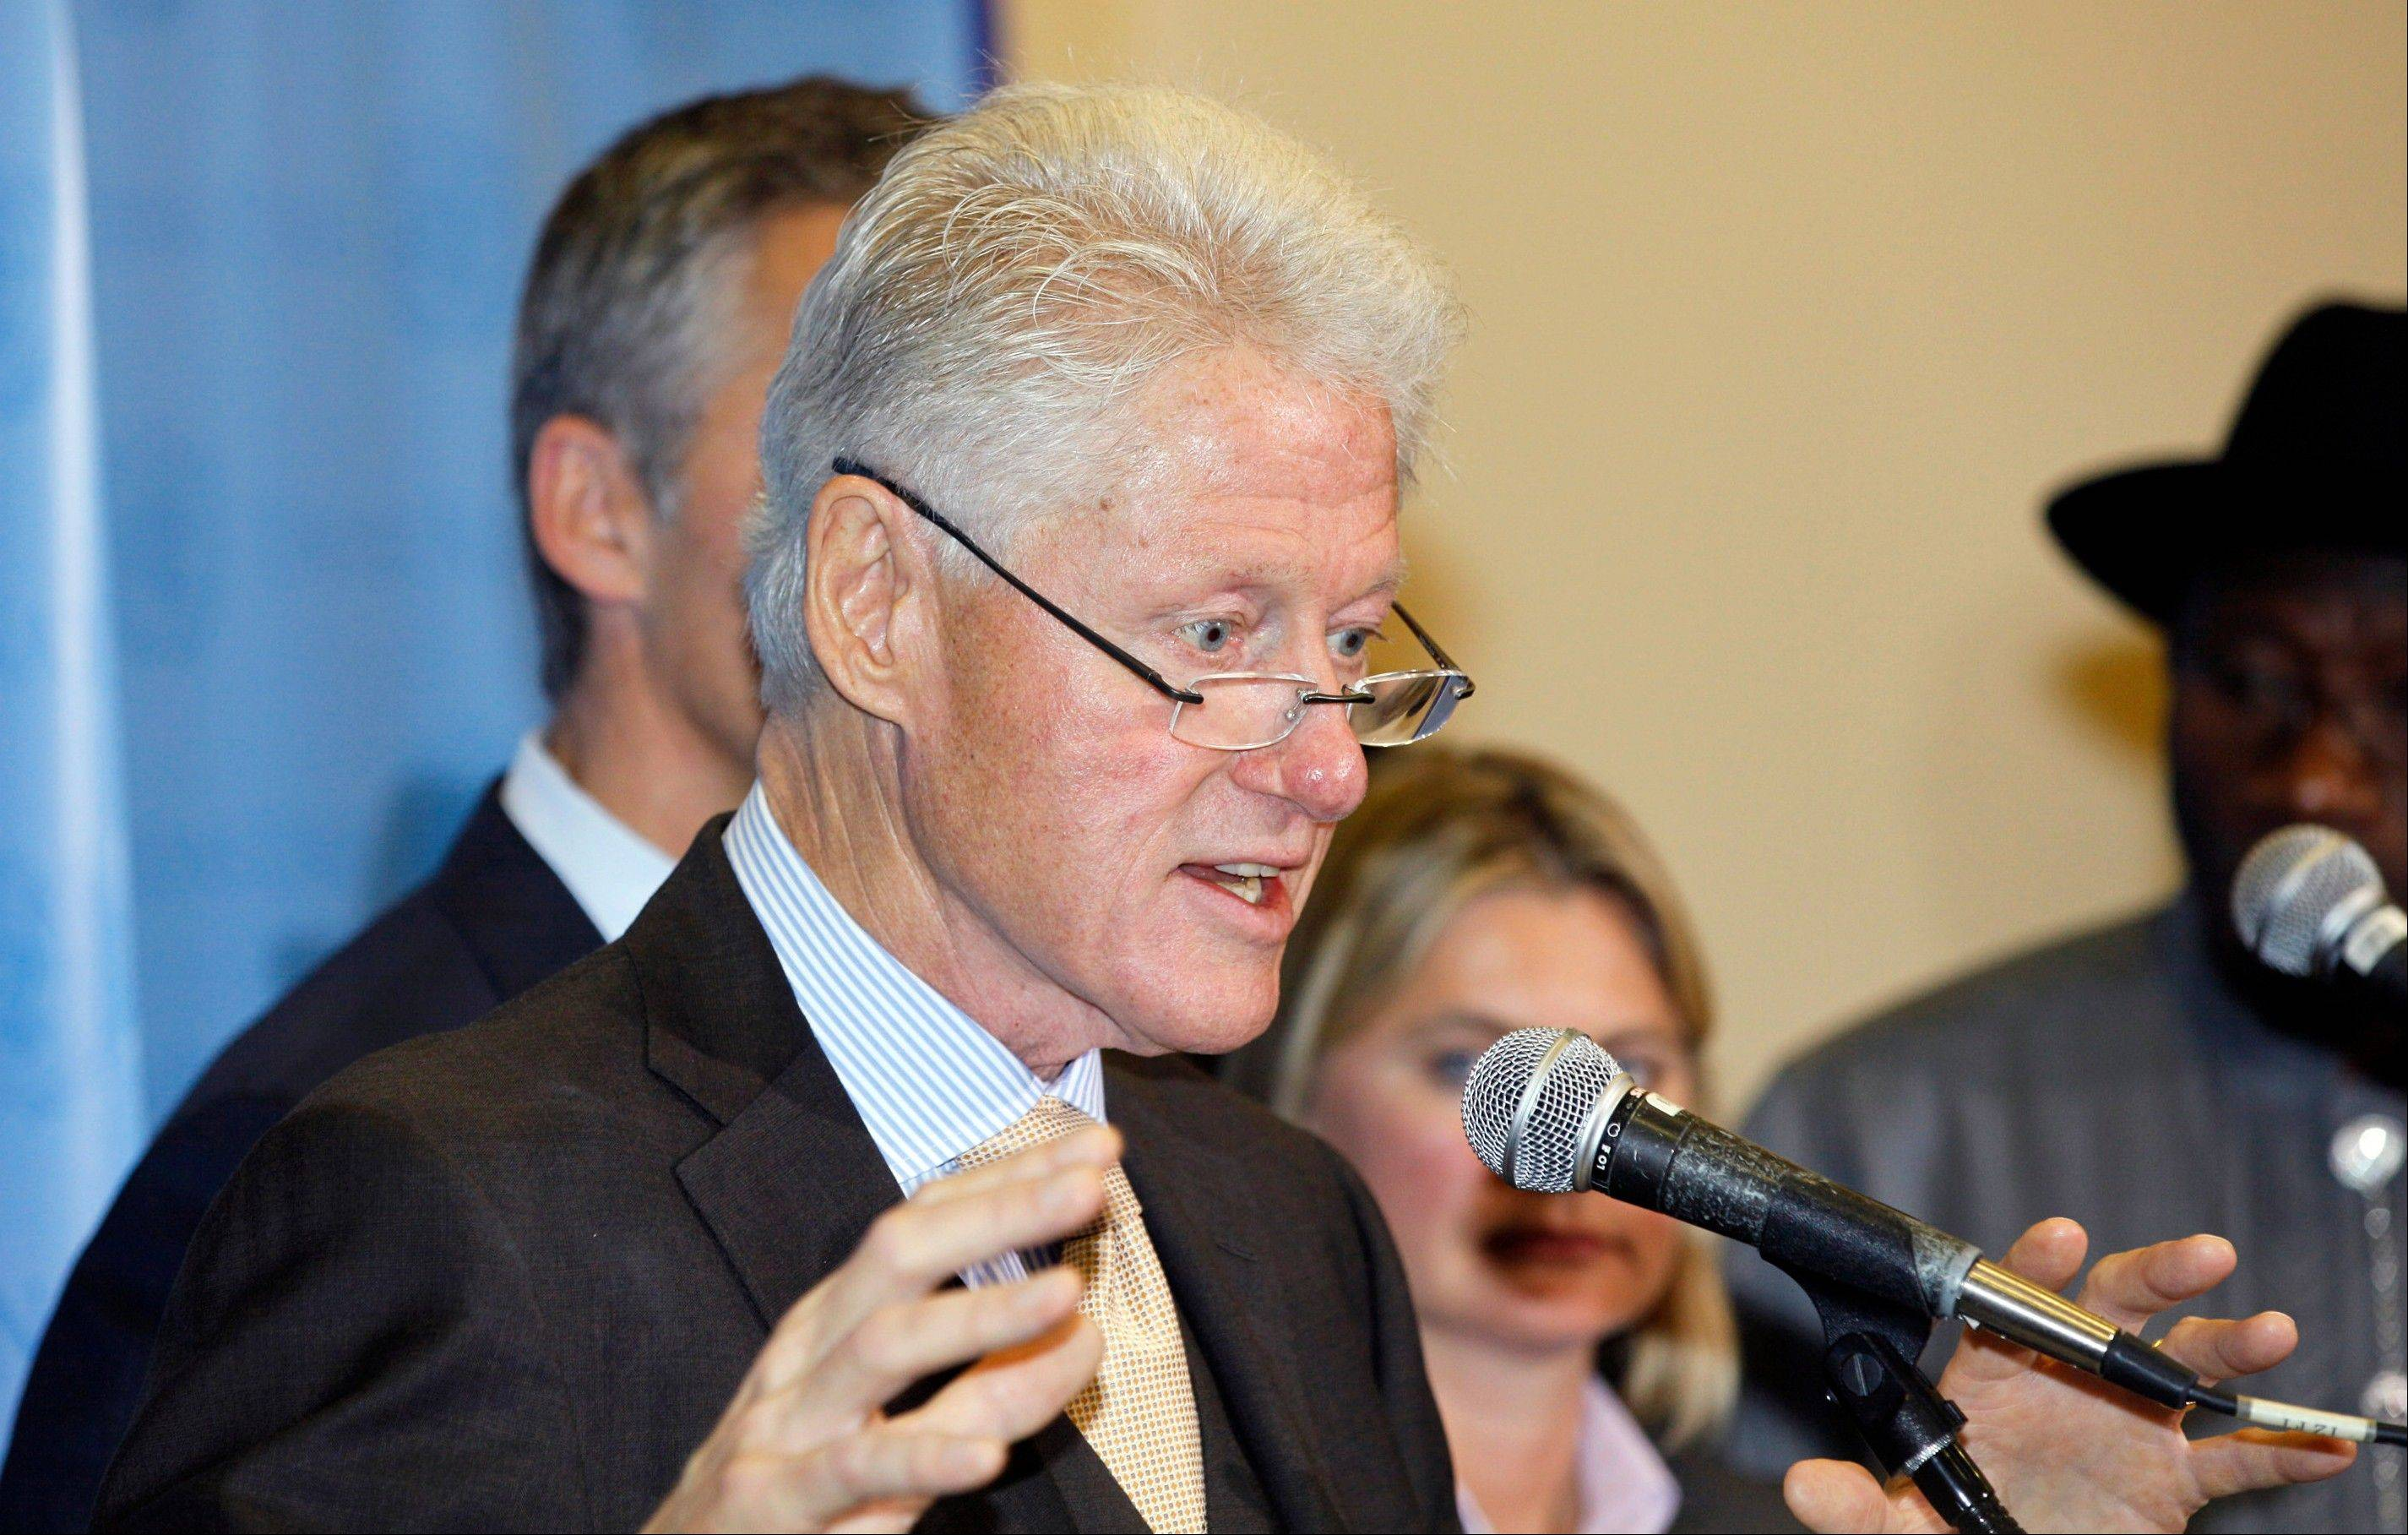 Former President Bill Clinton speaks to reporters Wednesday on the U.N. Commission on Life-Saving Commodities and Contraceptive Implants. Clinton is comfortable in a debate setting, and it helped him in his campaign against President George H. Bush.